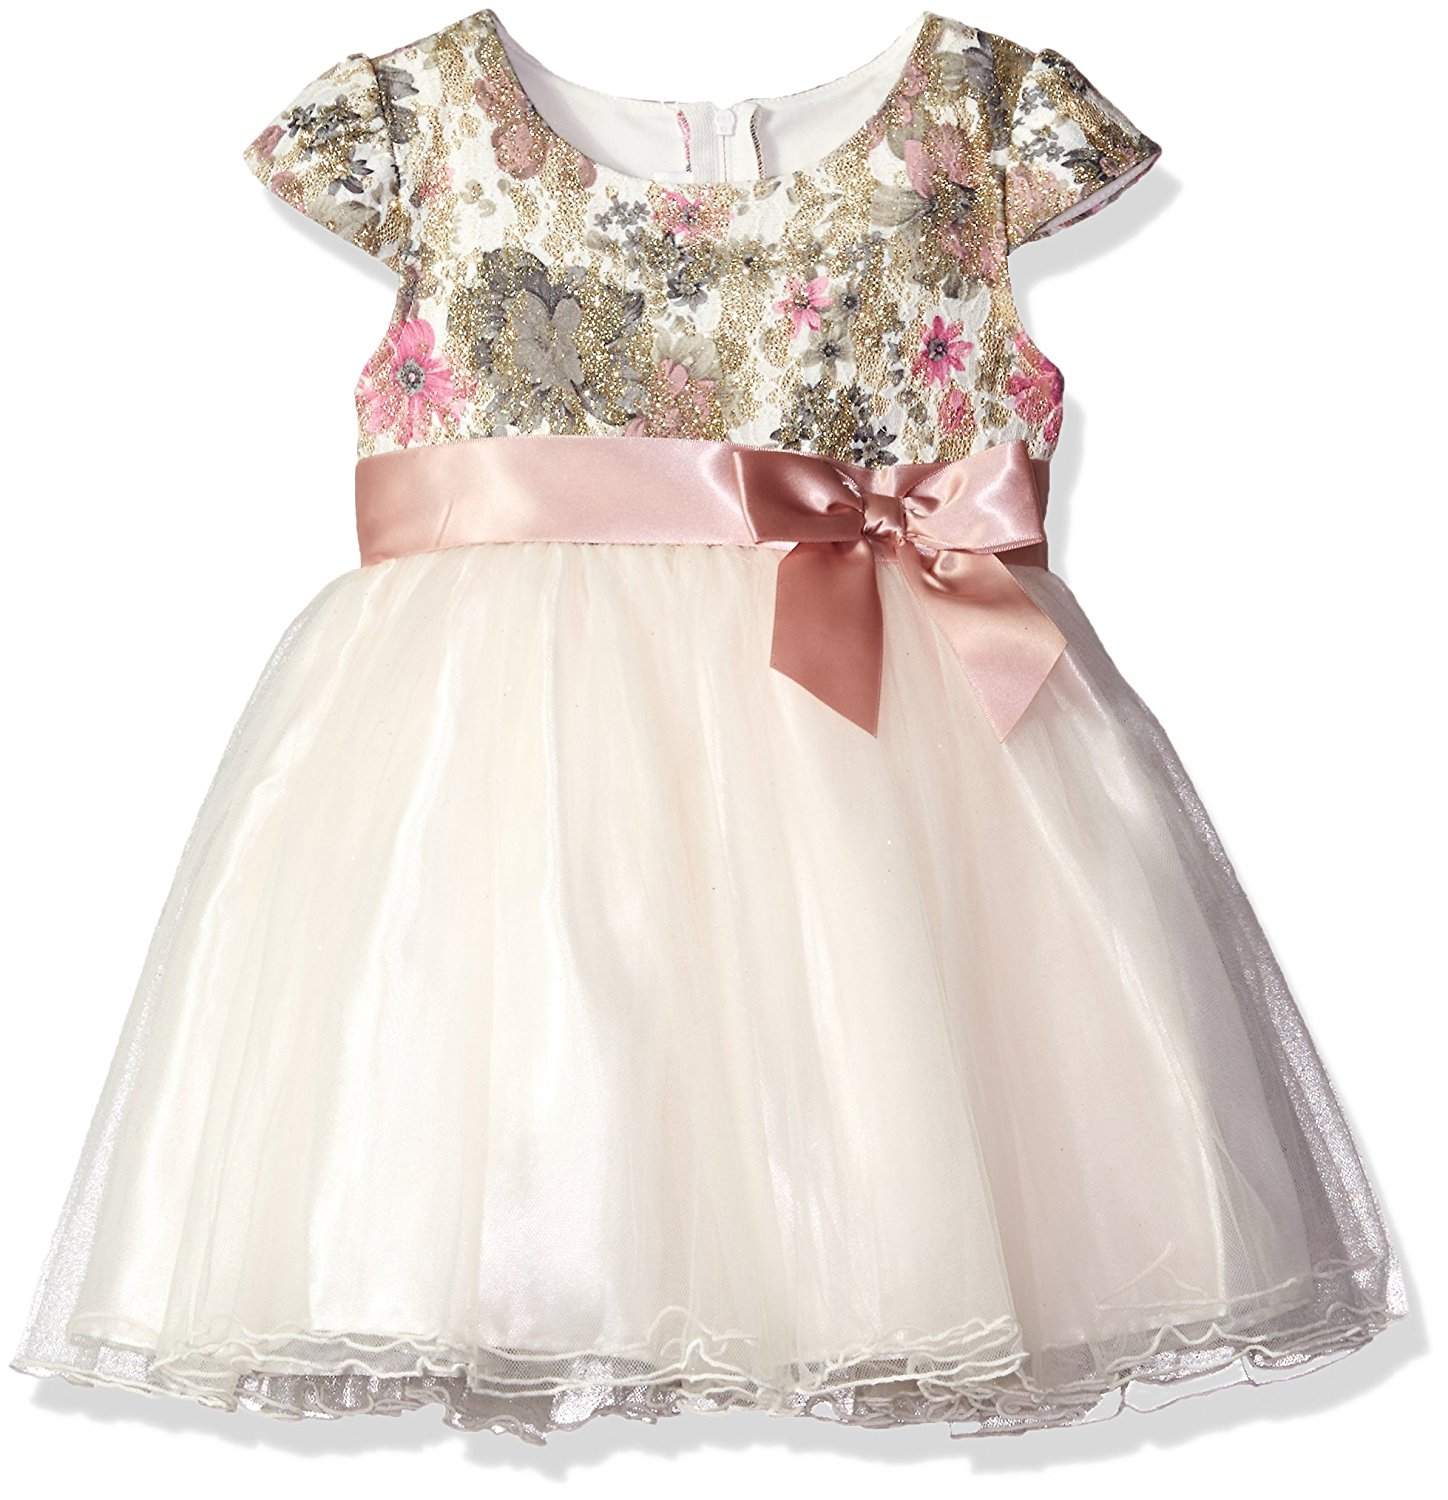 d5d005b94d Get Quotations · Bonnie Jean Girls' Short Sleeve Side Sash Ballerina Party  Dress